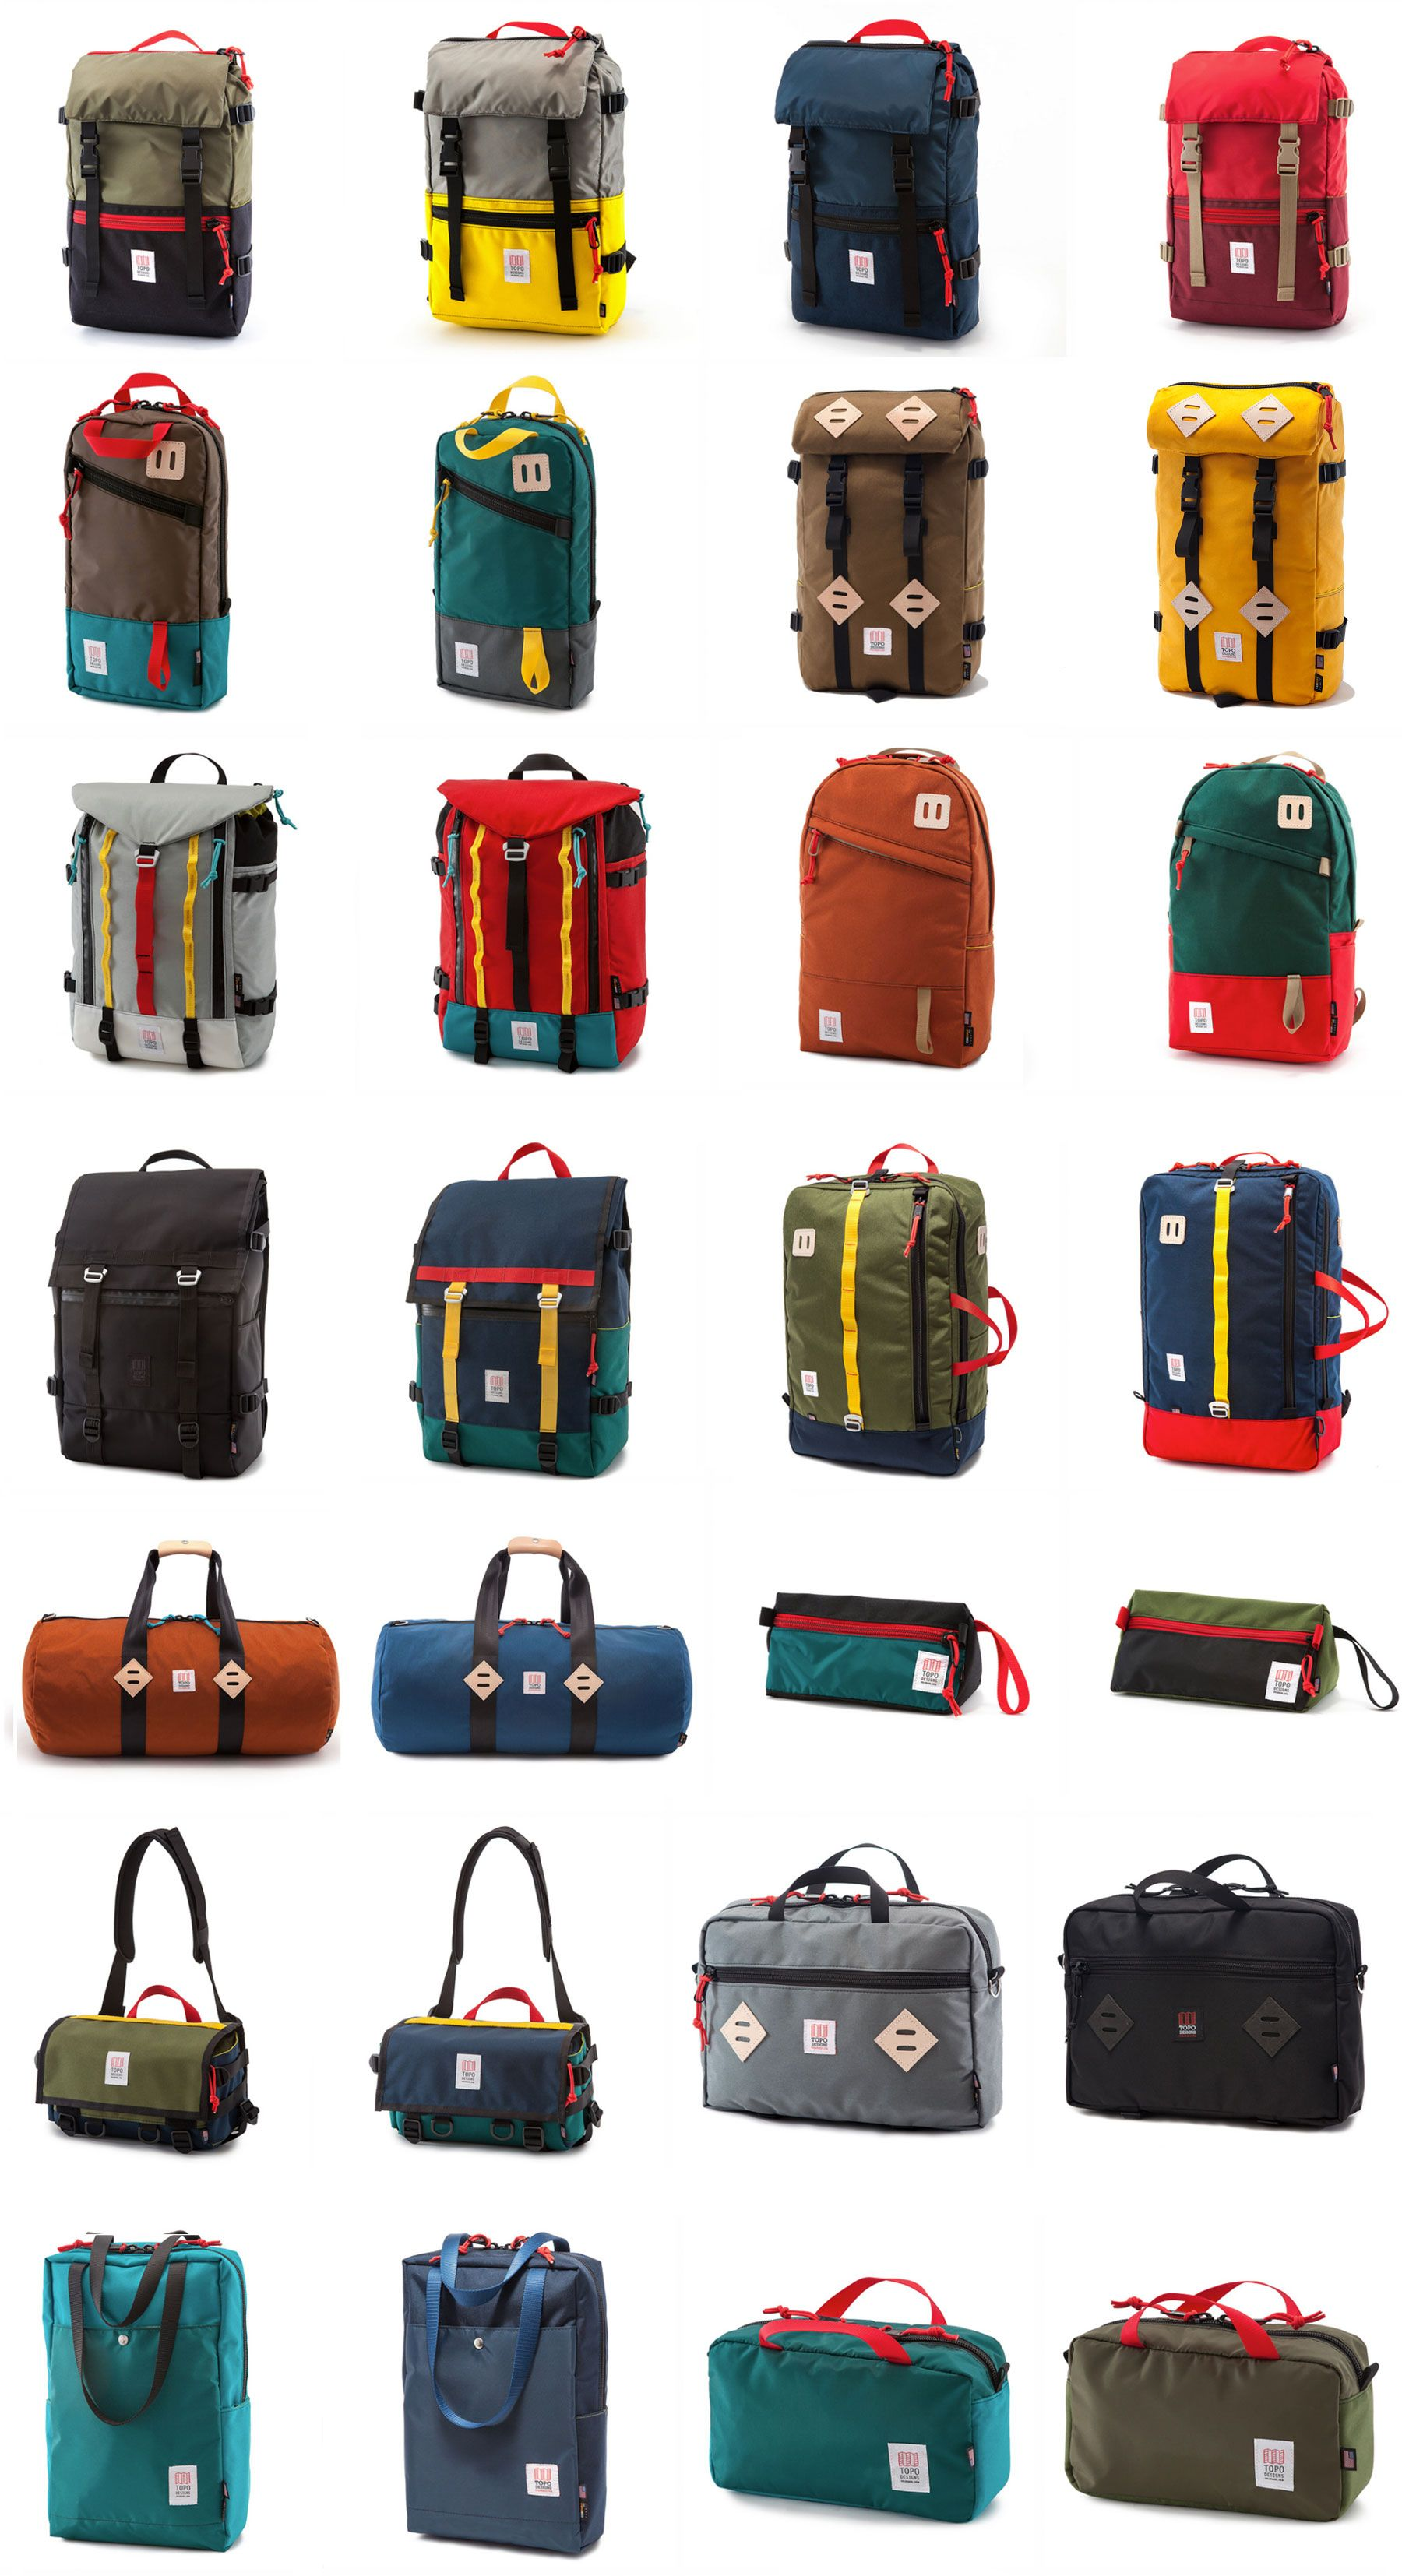 Backpacks, Bags, Apparel and Accessories Made in USA